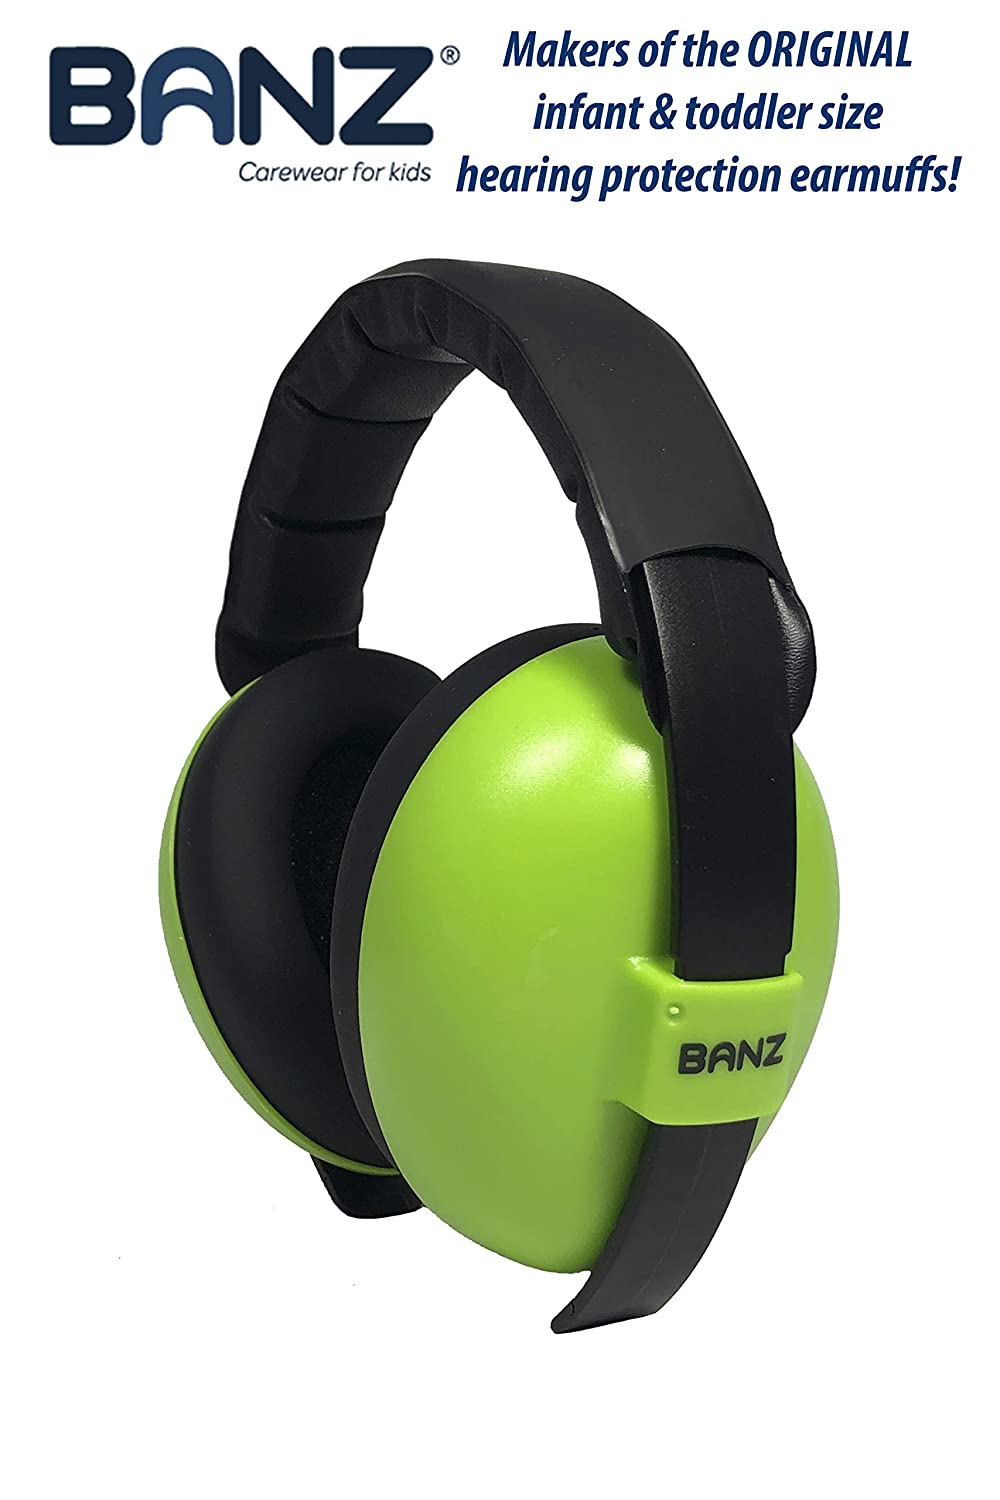 Lime Medium Baby BANZ Earmuffs Infant Hearing Protection  Ages 0-2 Years  The Best Earmuffs for Babies /& Toddlers  Industry Leading Noise Reduction Rating  Block Noise